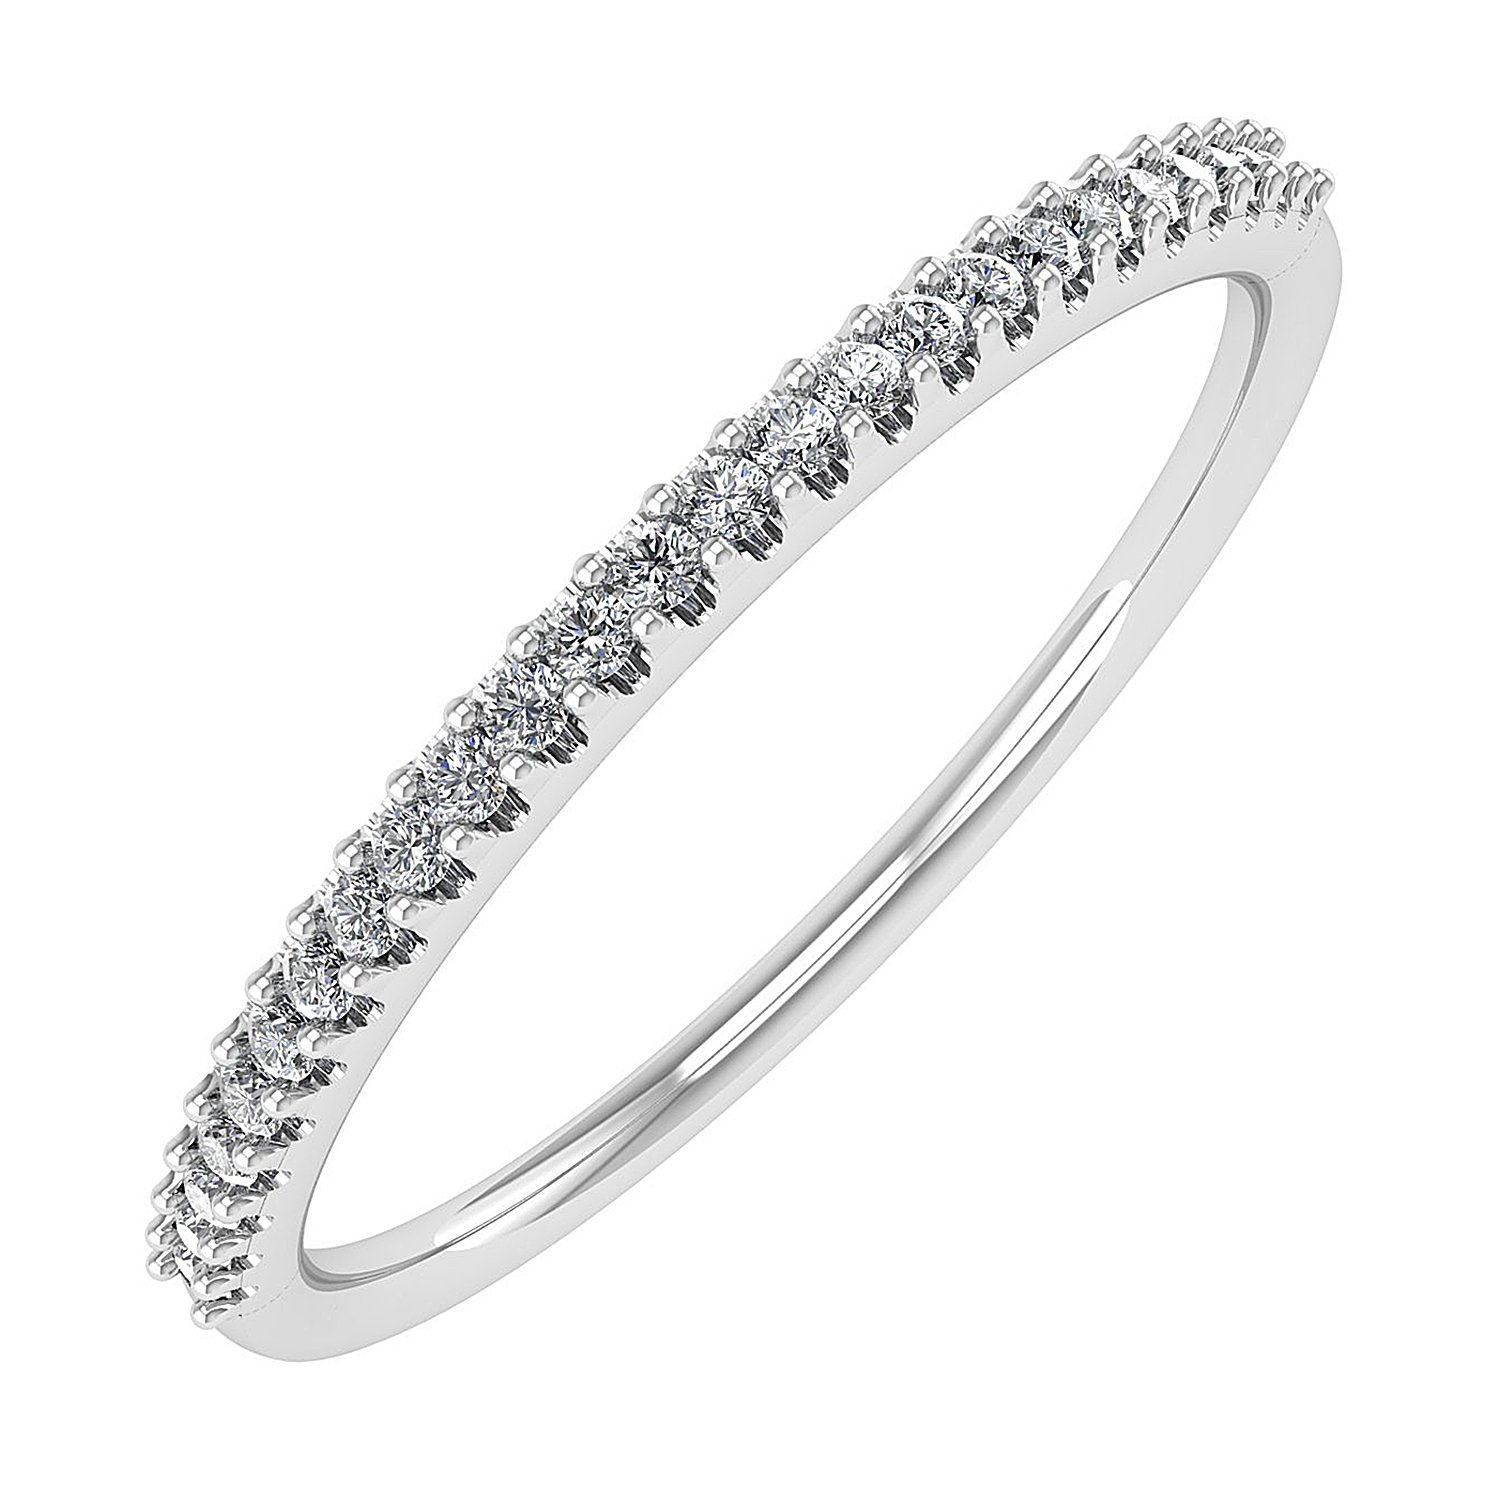 0.07 carat 10k White Gold Round Diamond Ladies Anniversary/Wedding stackable Band Ring - IGI Certified